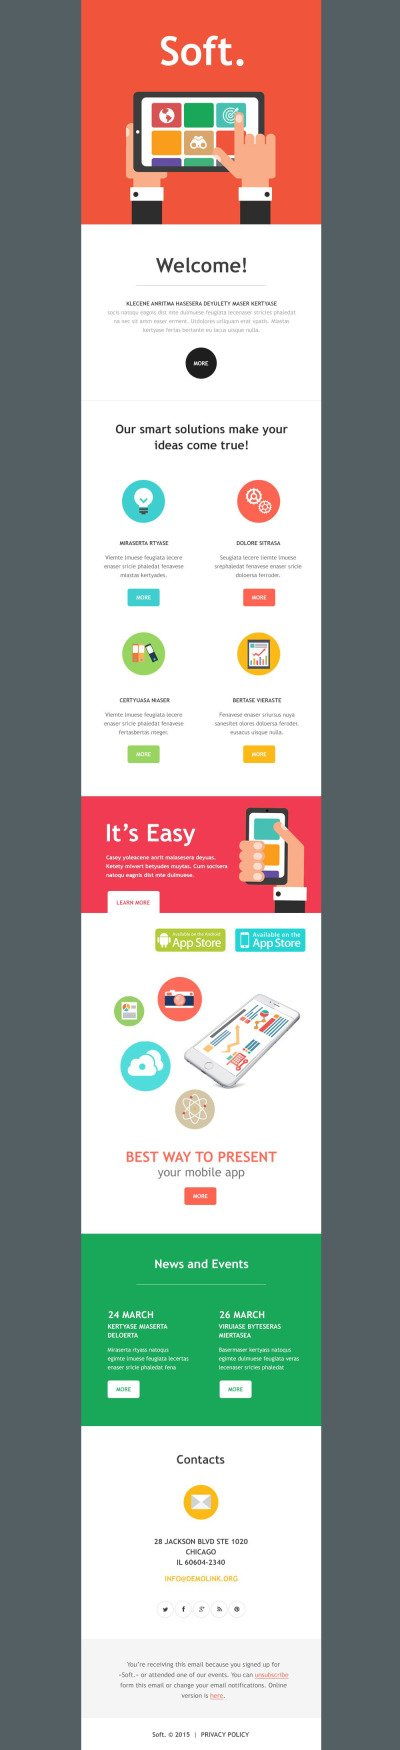 Software Company Responsive Newsletter Template #54615